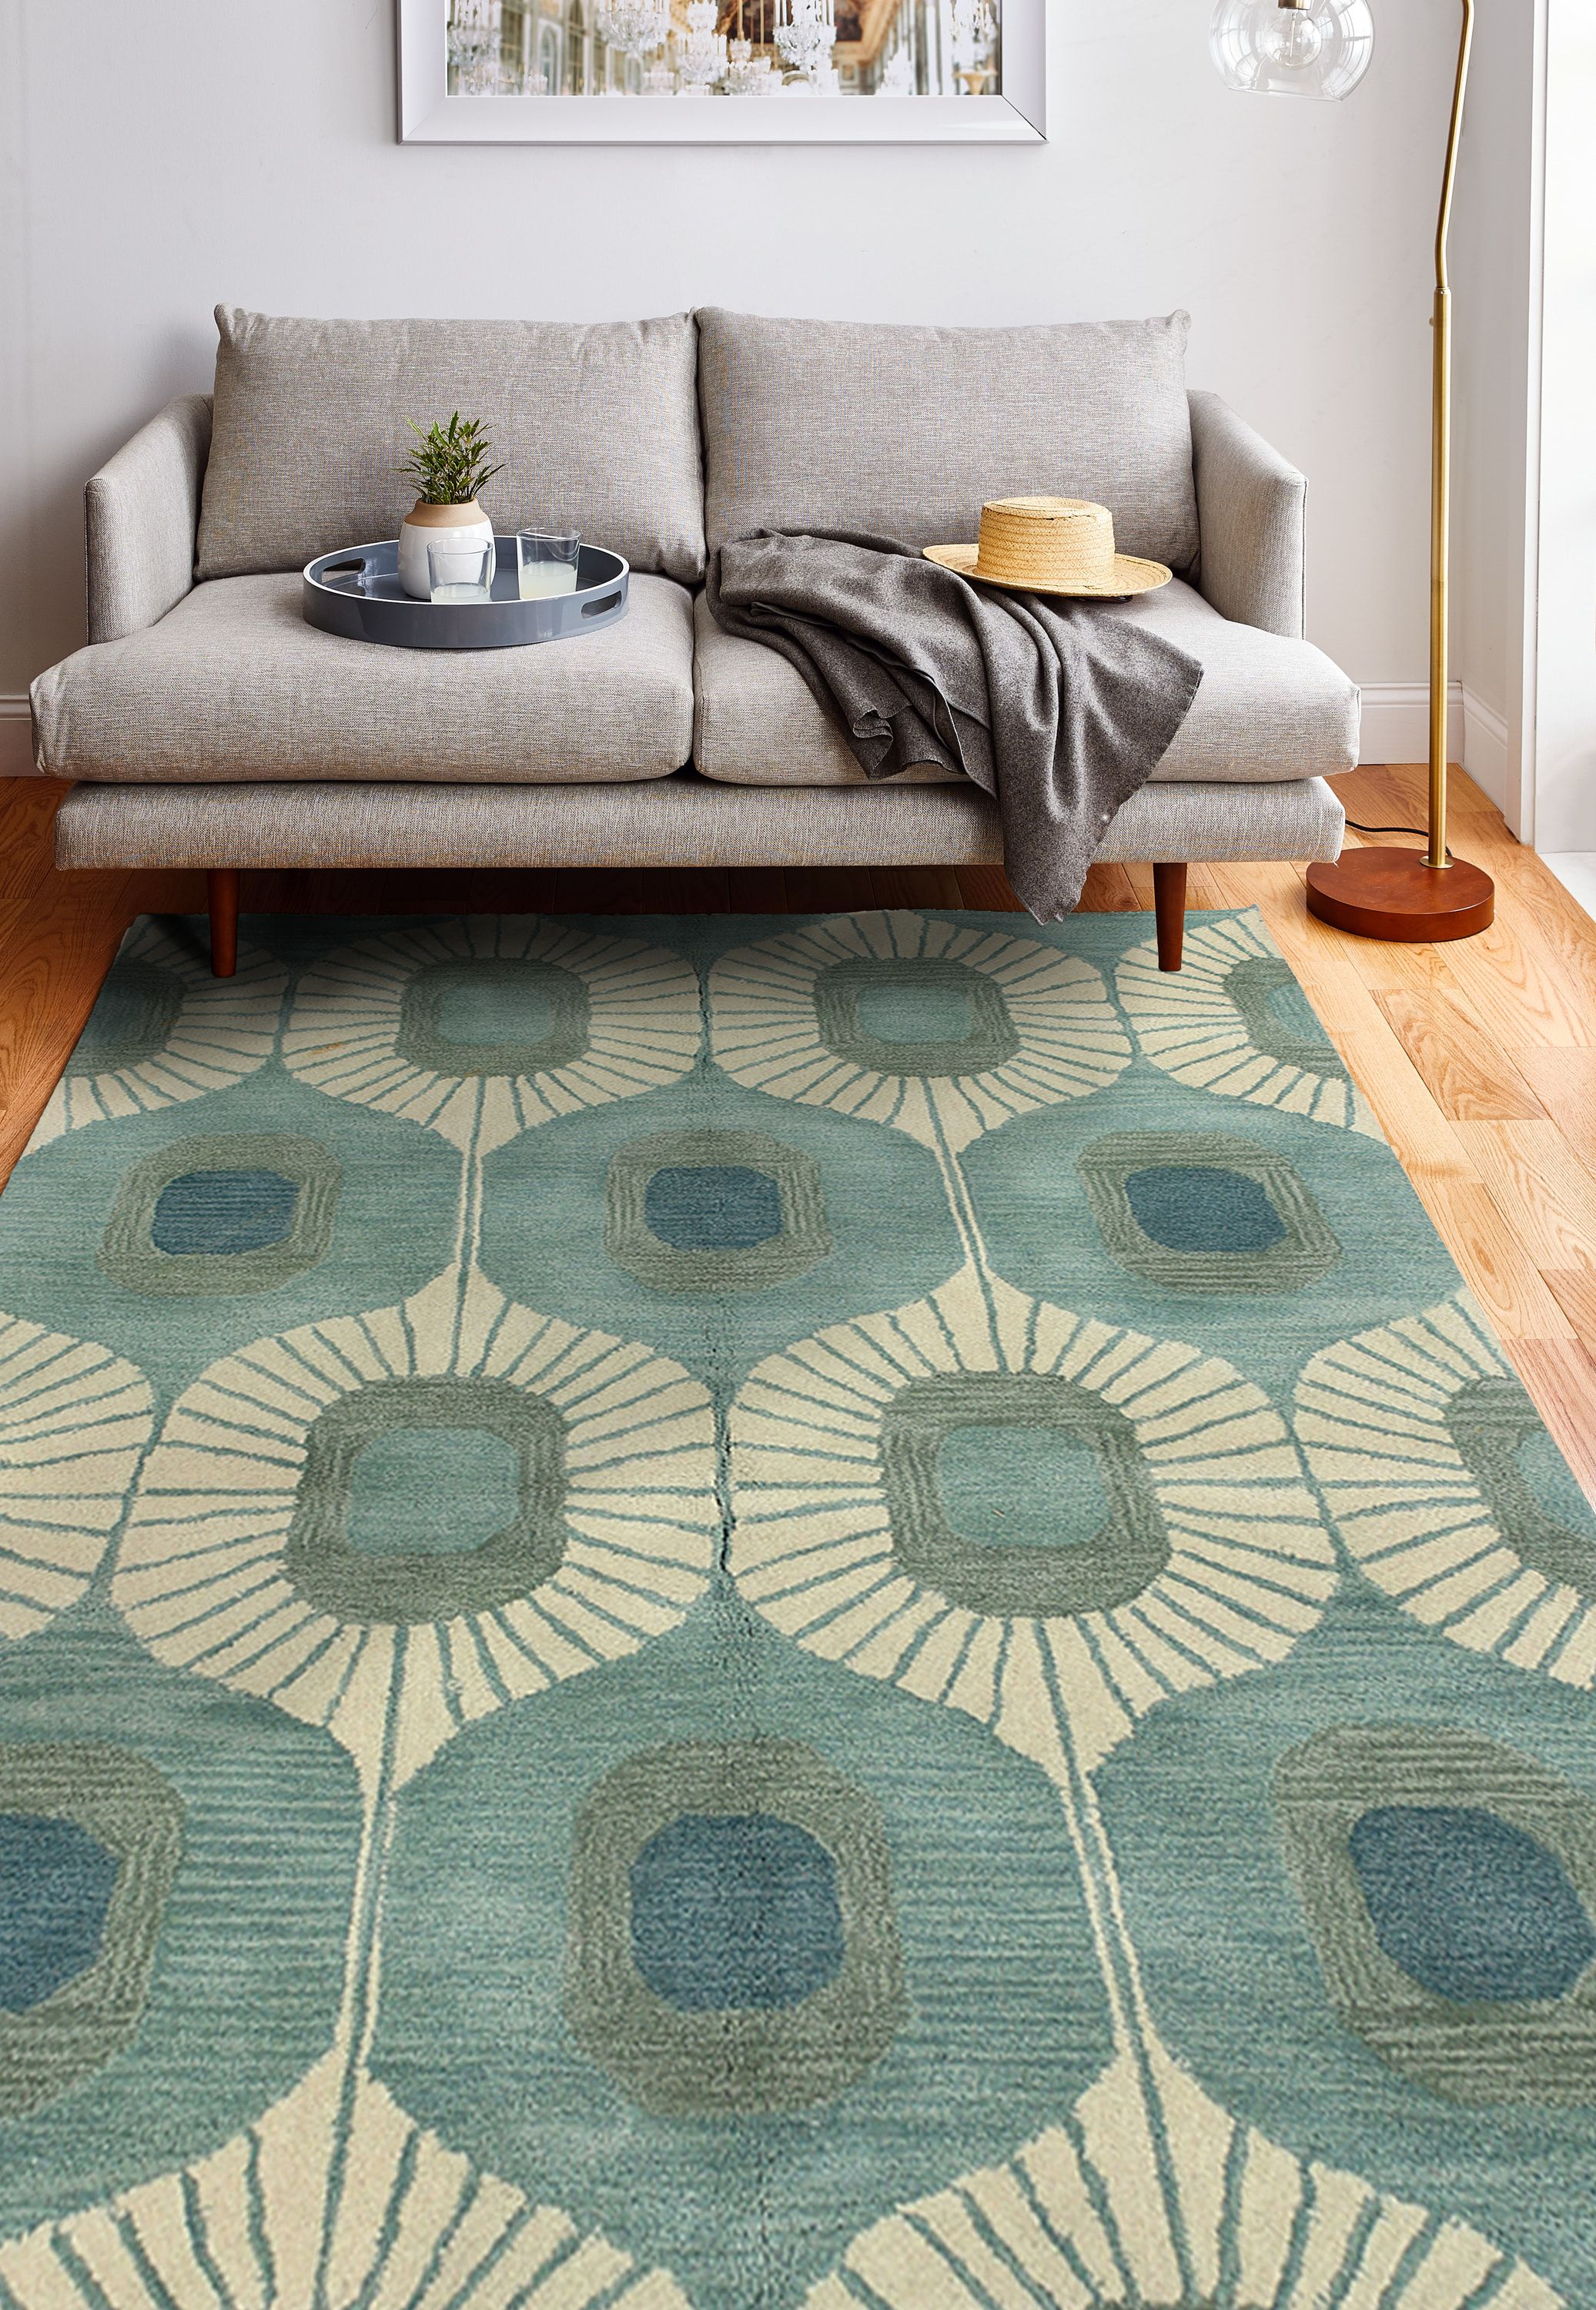 Brighten Your Living Room With The Woodbridge Are Rug From Bashian S Chelsea Collection M Mid Century Modern Rugs Rugs In Living Room Living Room Decor Modern